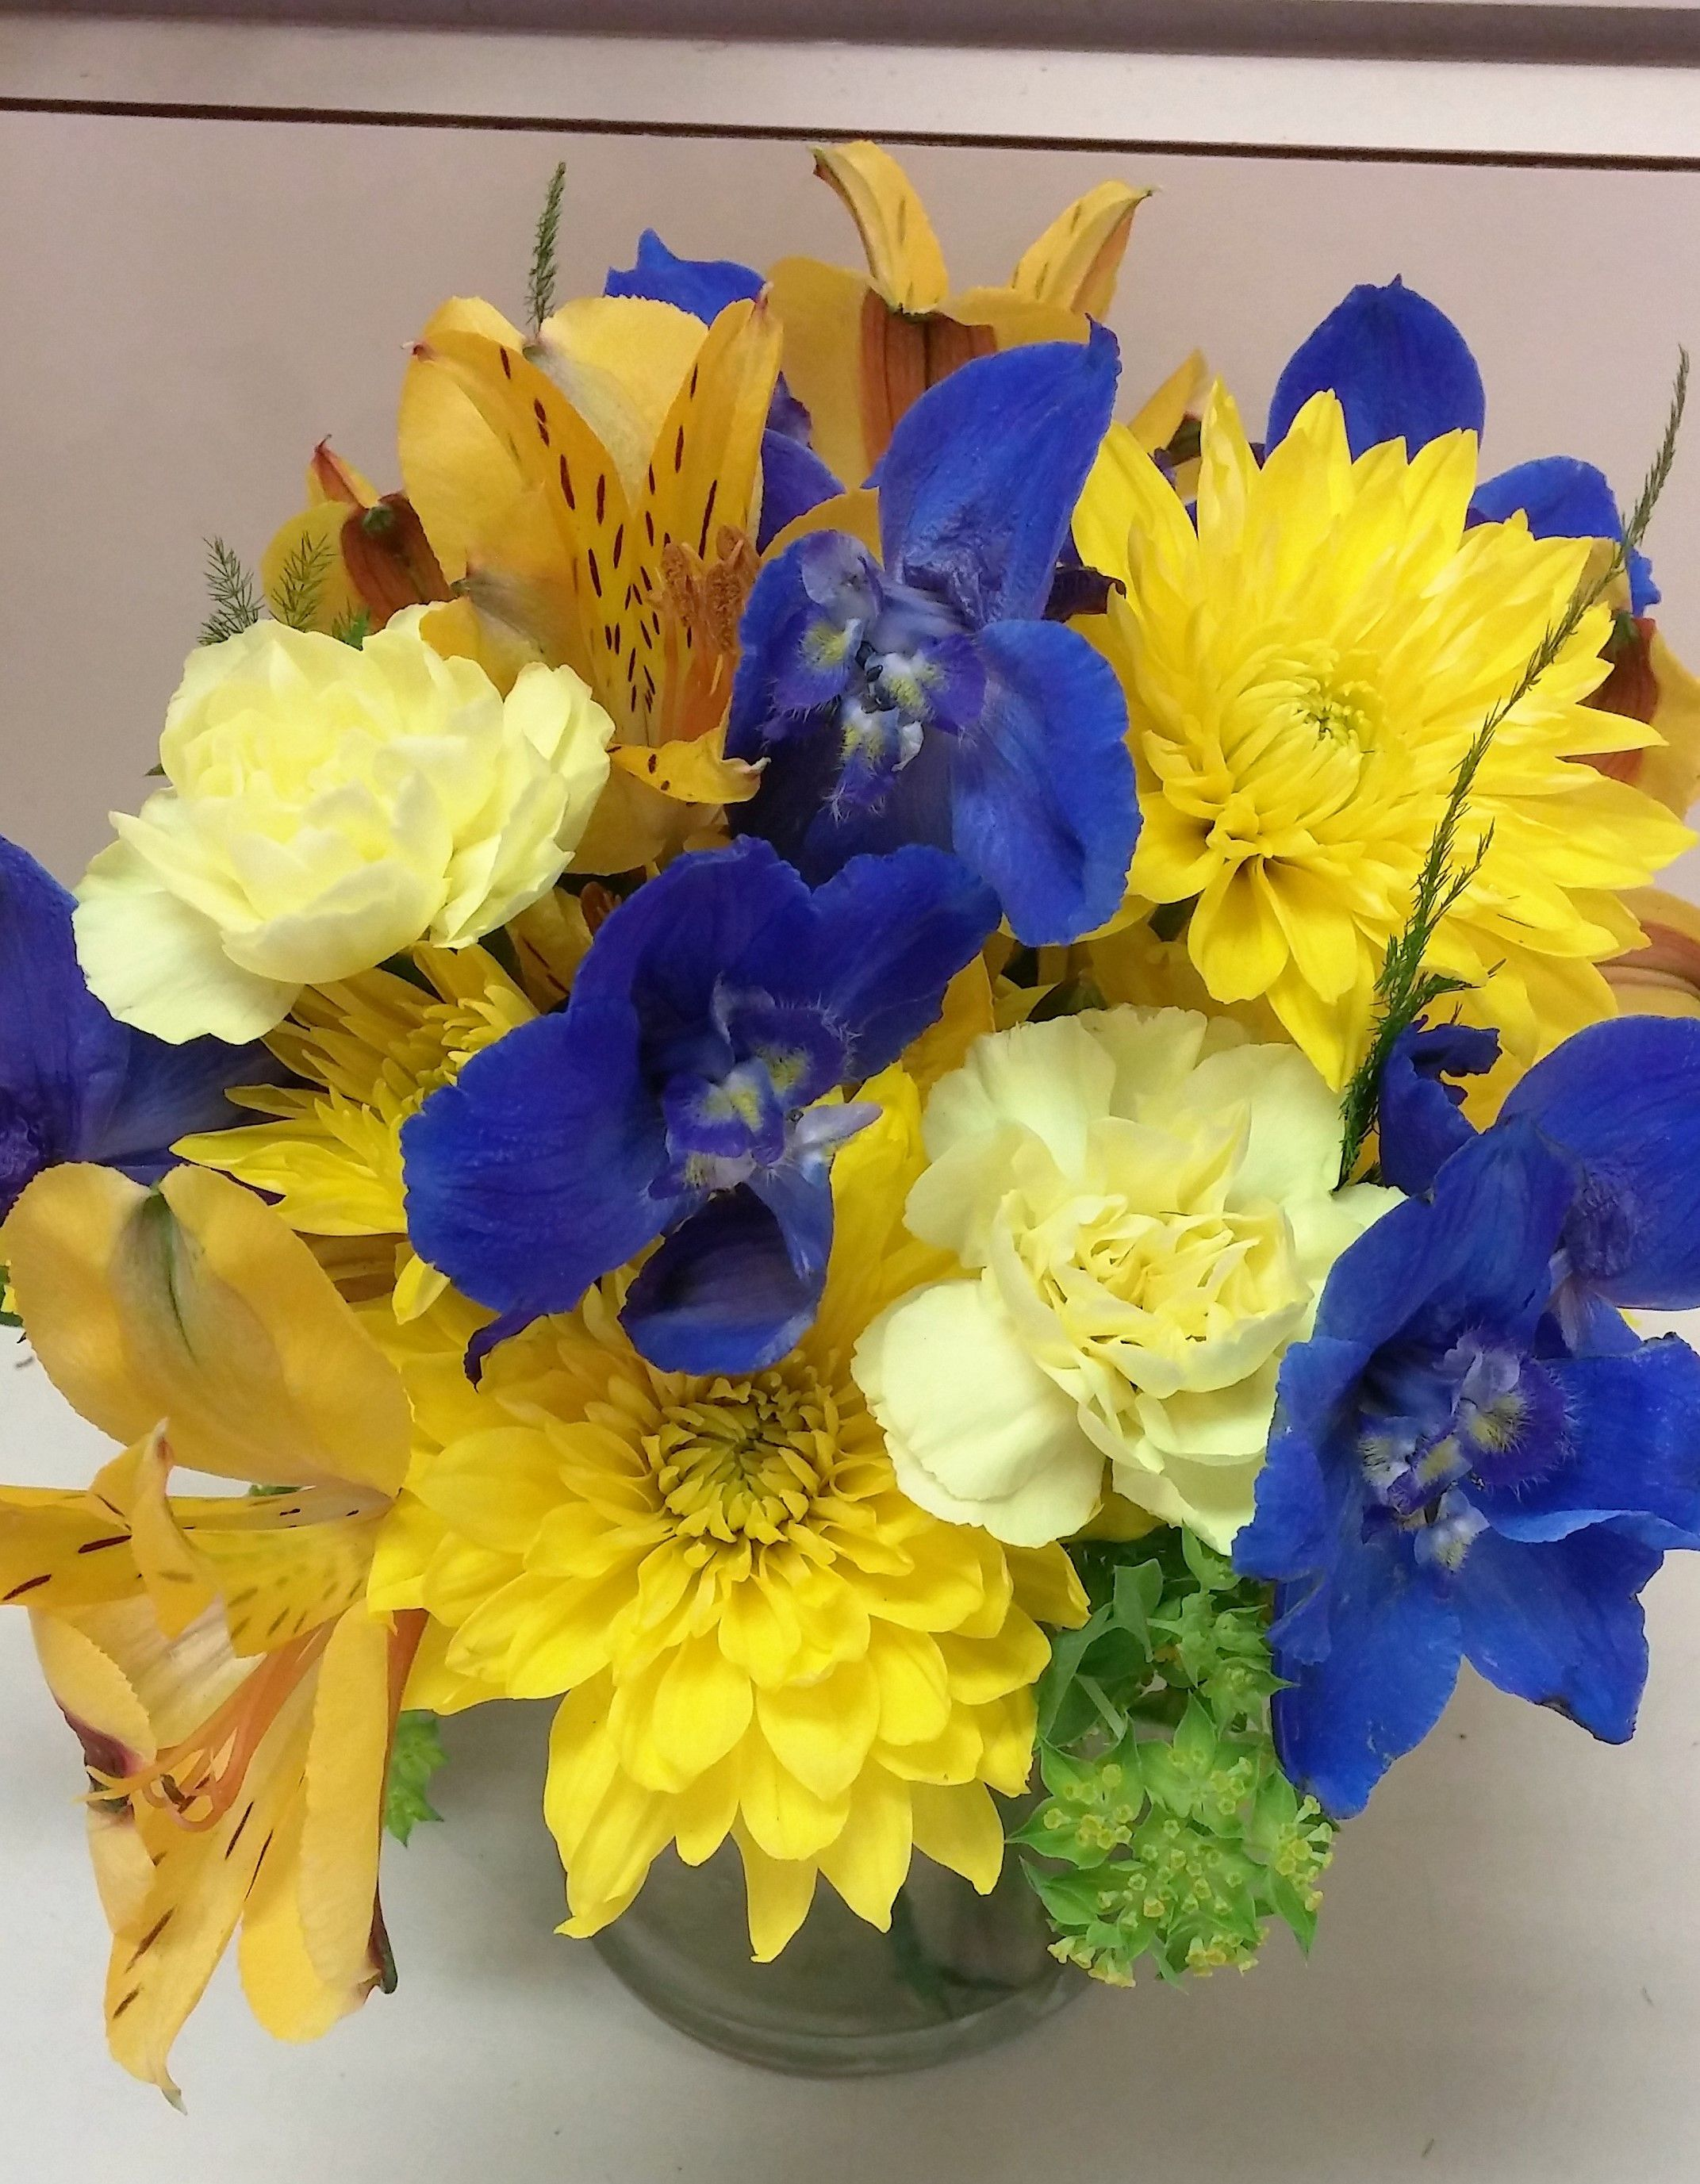 U Of M Flower Arrangement Maize And Blue Flowers Blue Delphinium